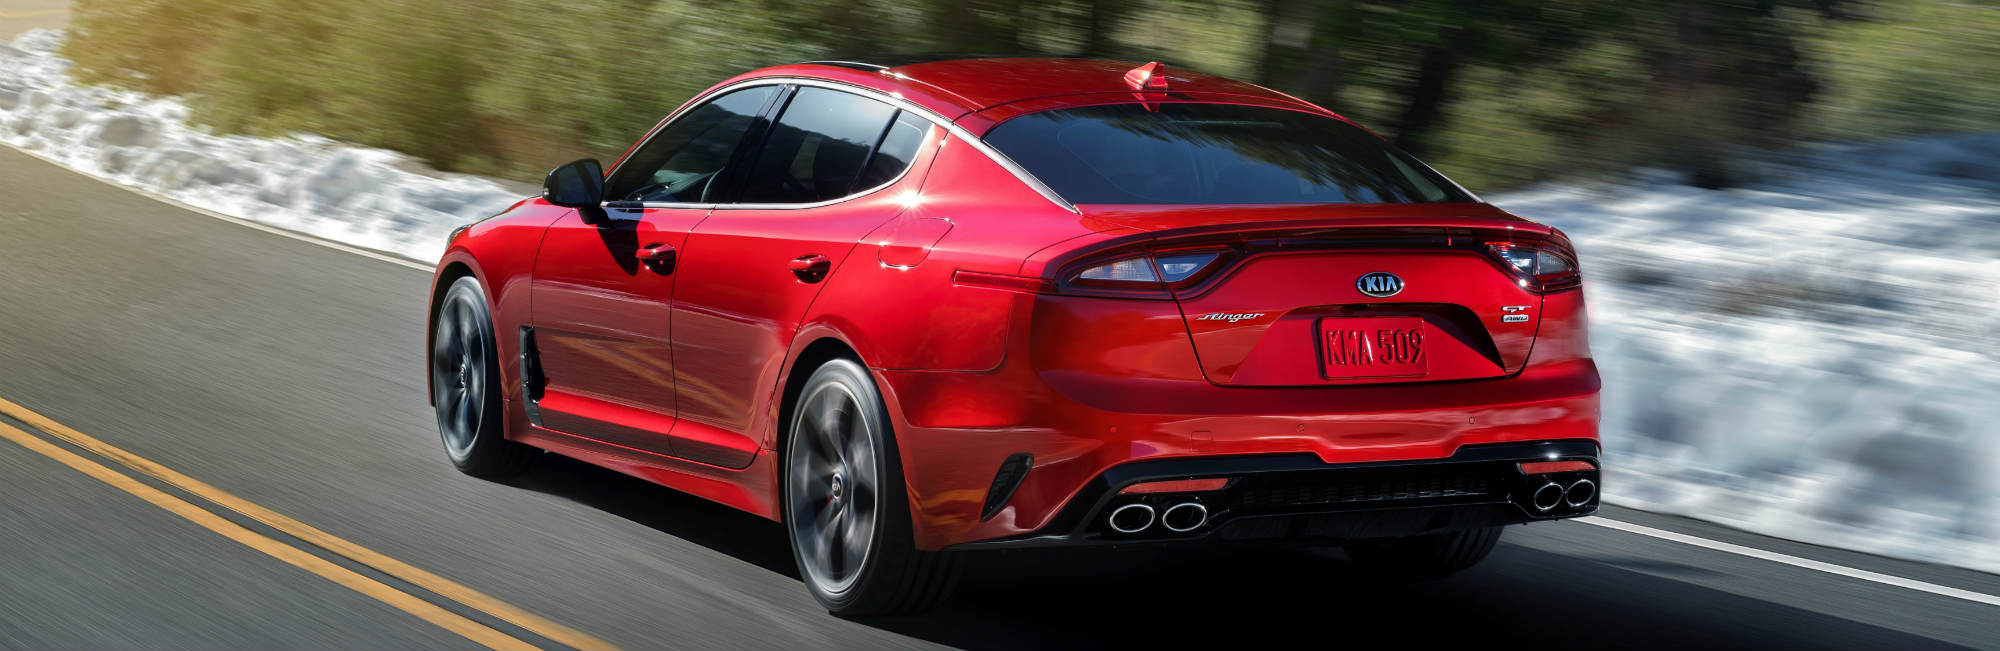 2018 Kia Stinger Release Date New Car Release Date And